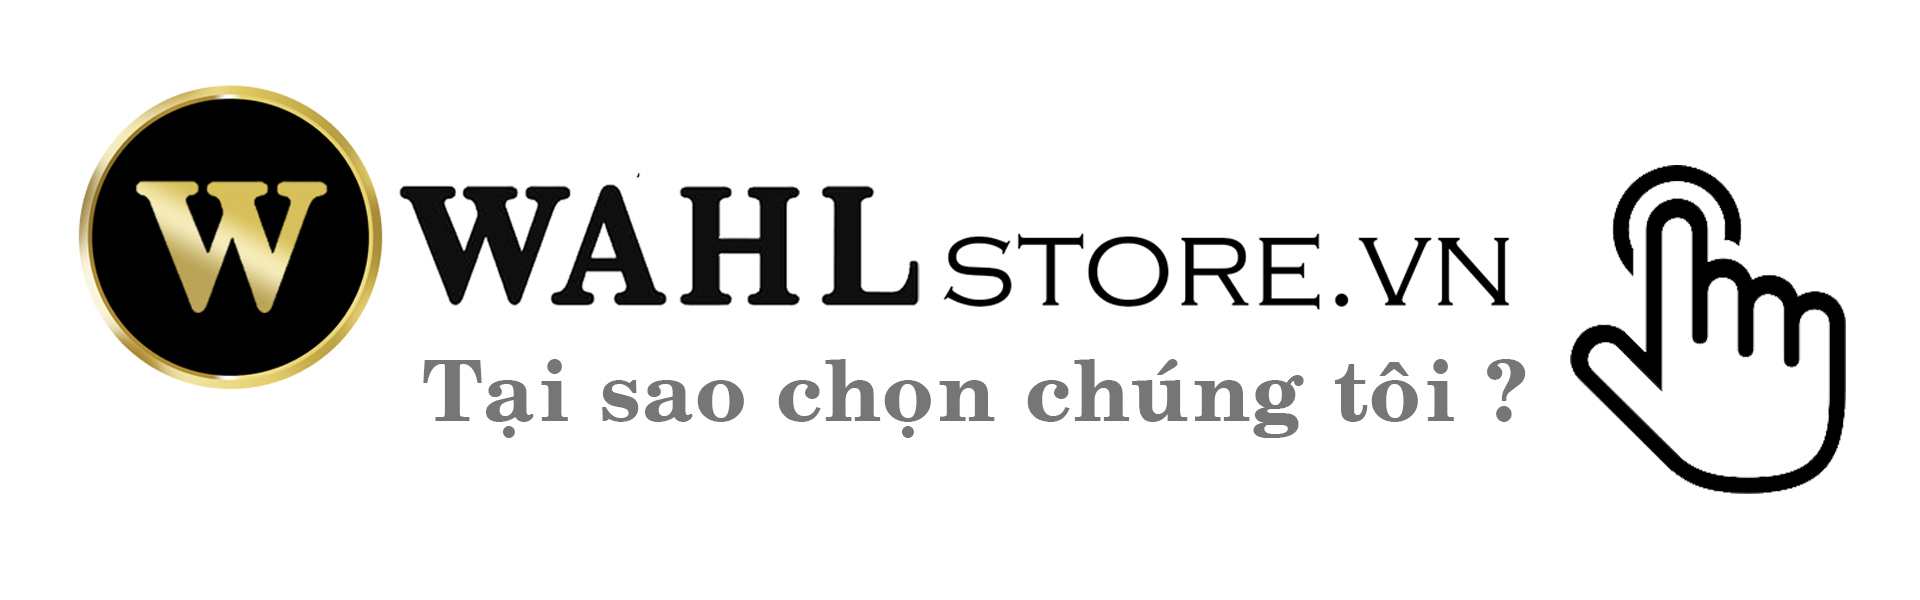 WAHLstore.vn